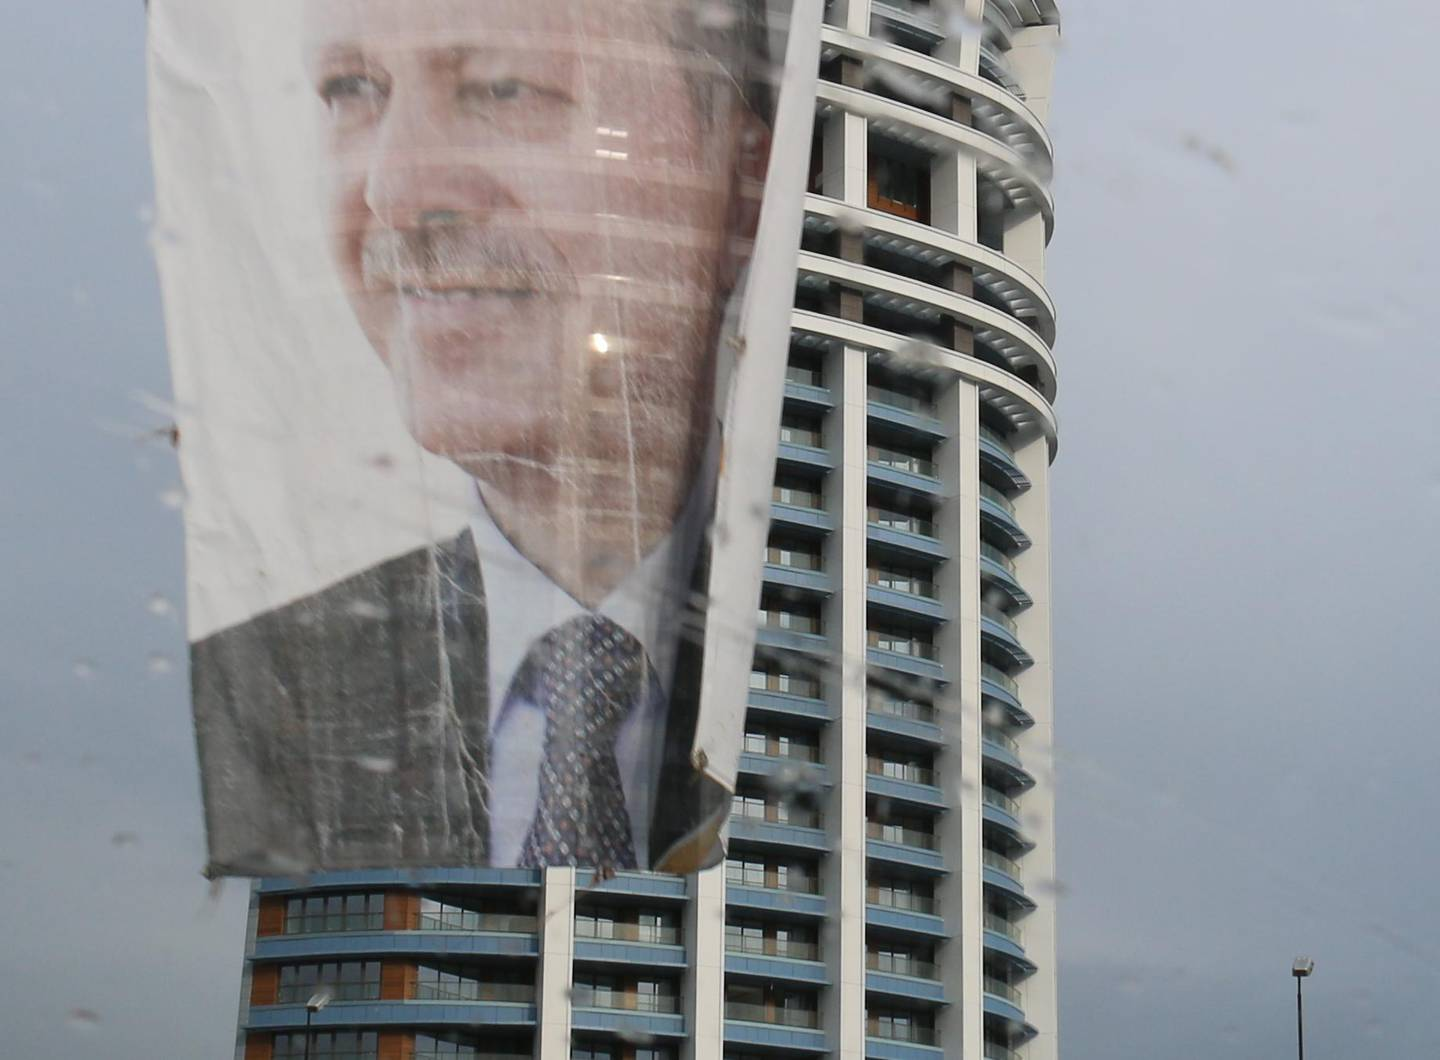 ISTANBUL - MARCH 30: Turkish Prime Minister Recep Tayyip Erdogan's face adorns posters throughout Istanbul, even though the election is regional. This poster, seen through a car windshield on a rainy day, hangs above a highway. March 30, 2014.        (Tanya Talaga/Toronto Star via Getty Images)